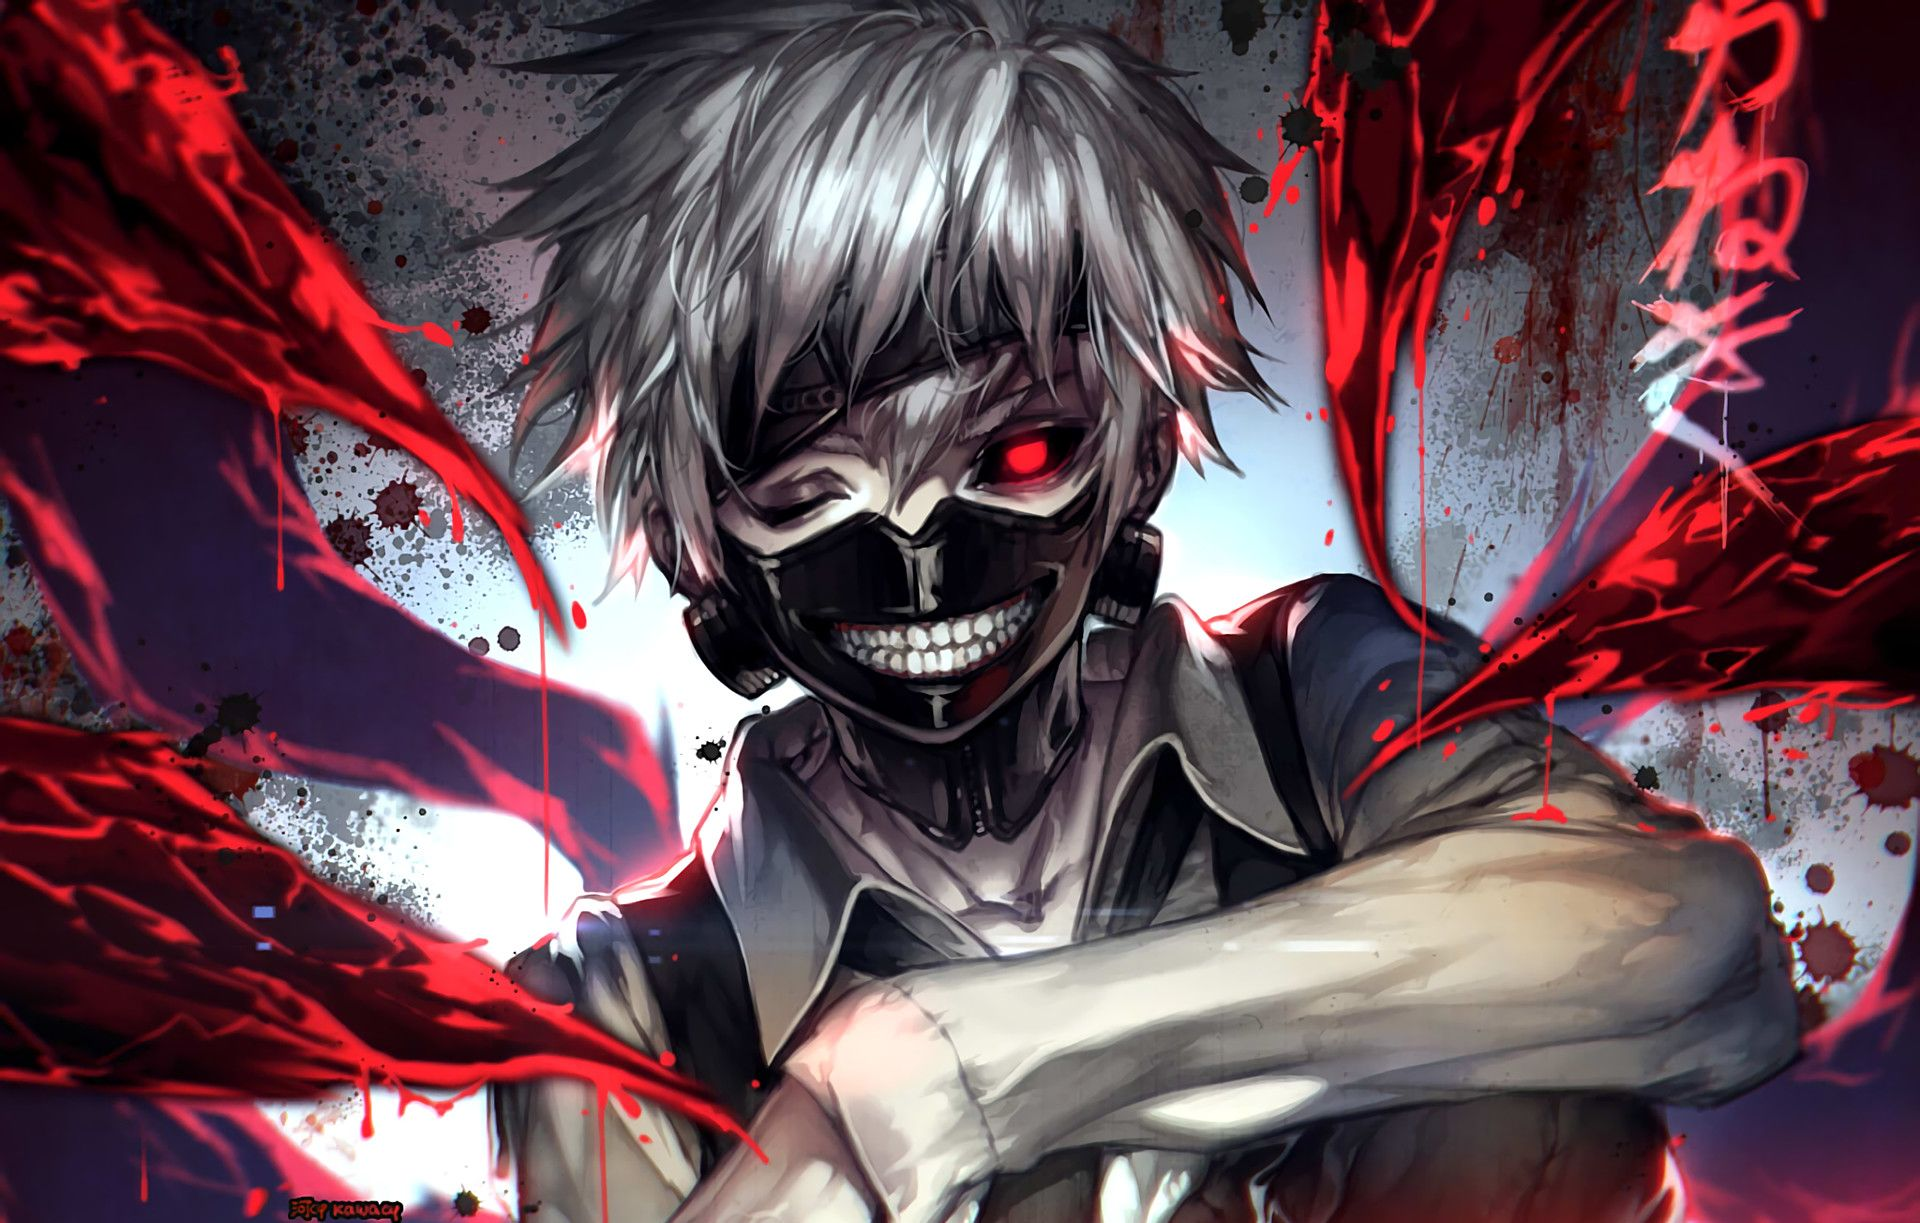 Crazy Creepy Anime Wallpapers - Wallpaper Cave